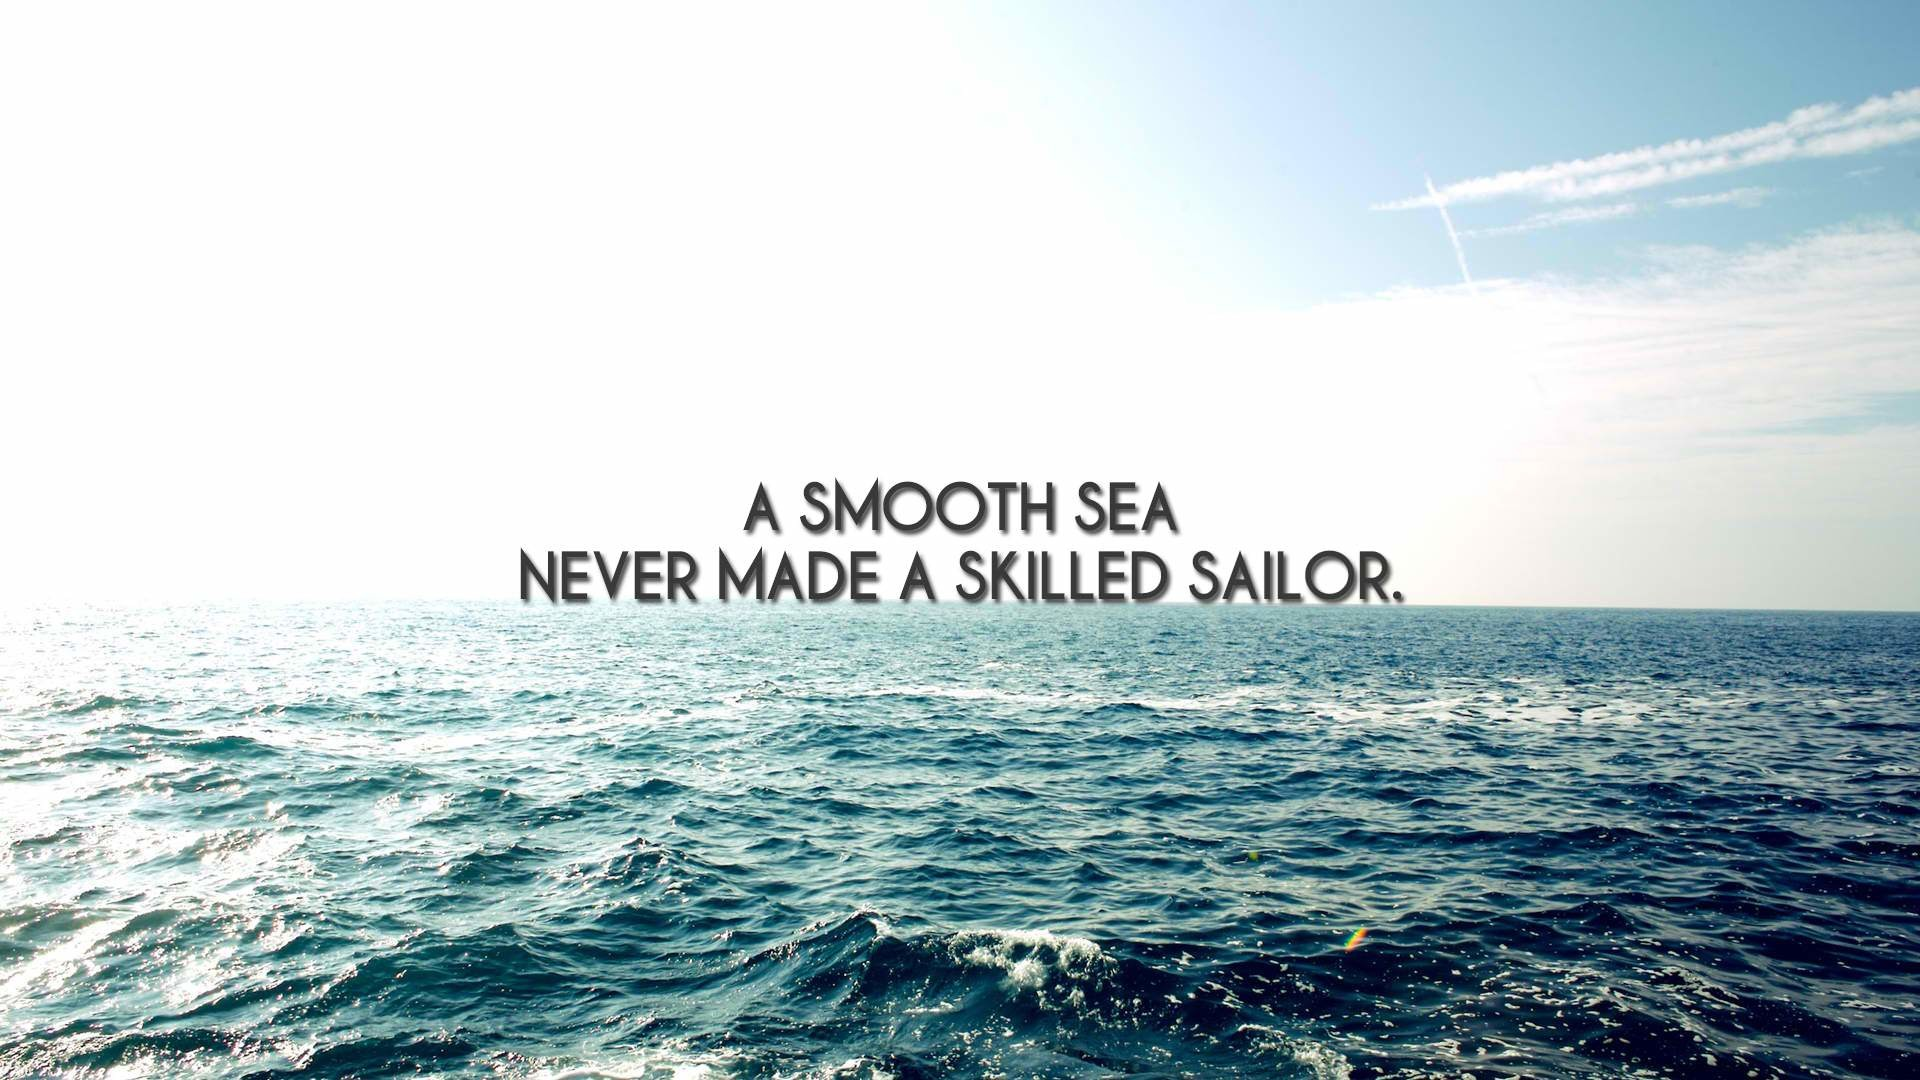 1920x1080 A smooth sea never made a skilled sailor.